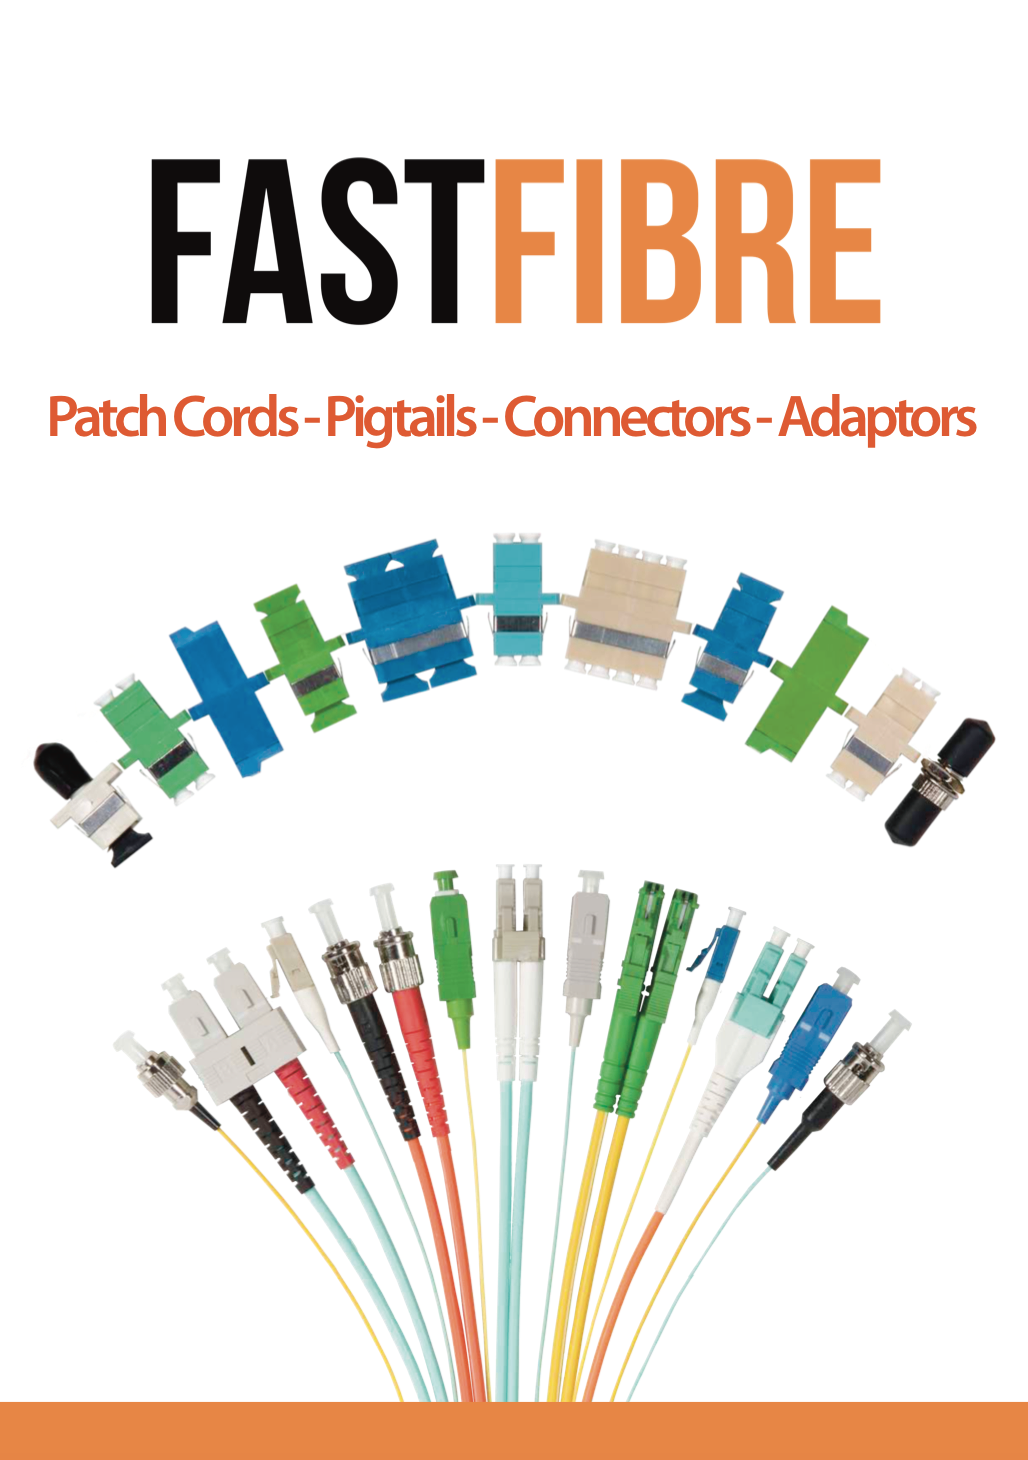 Patch Cords, Pigtails, Connectors & Adaptors